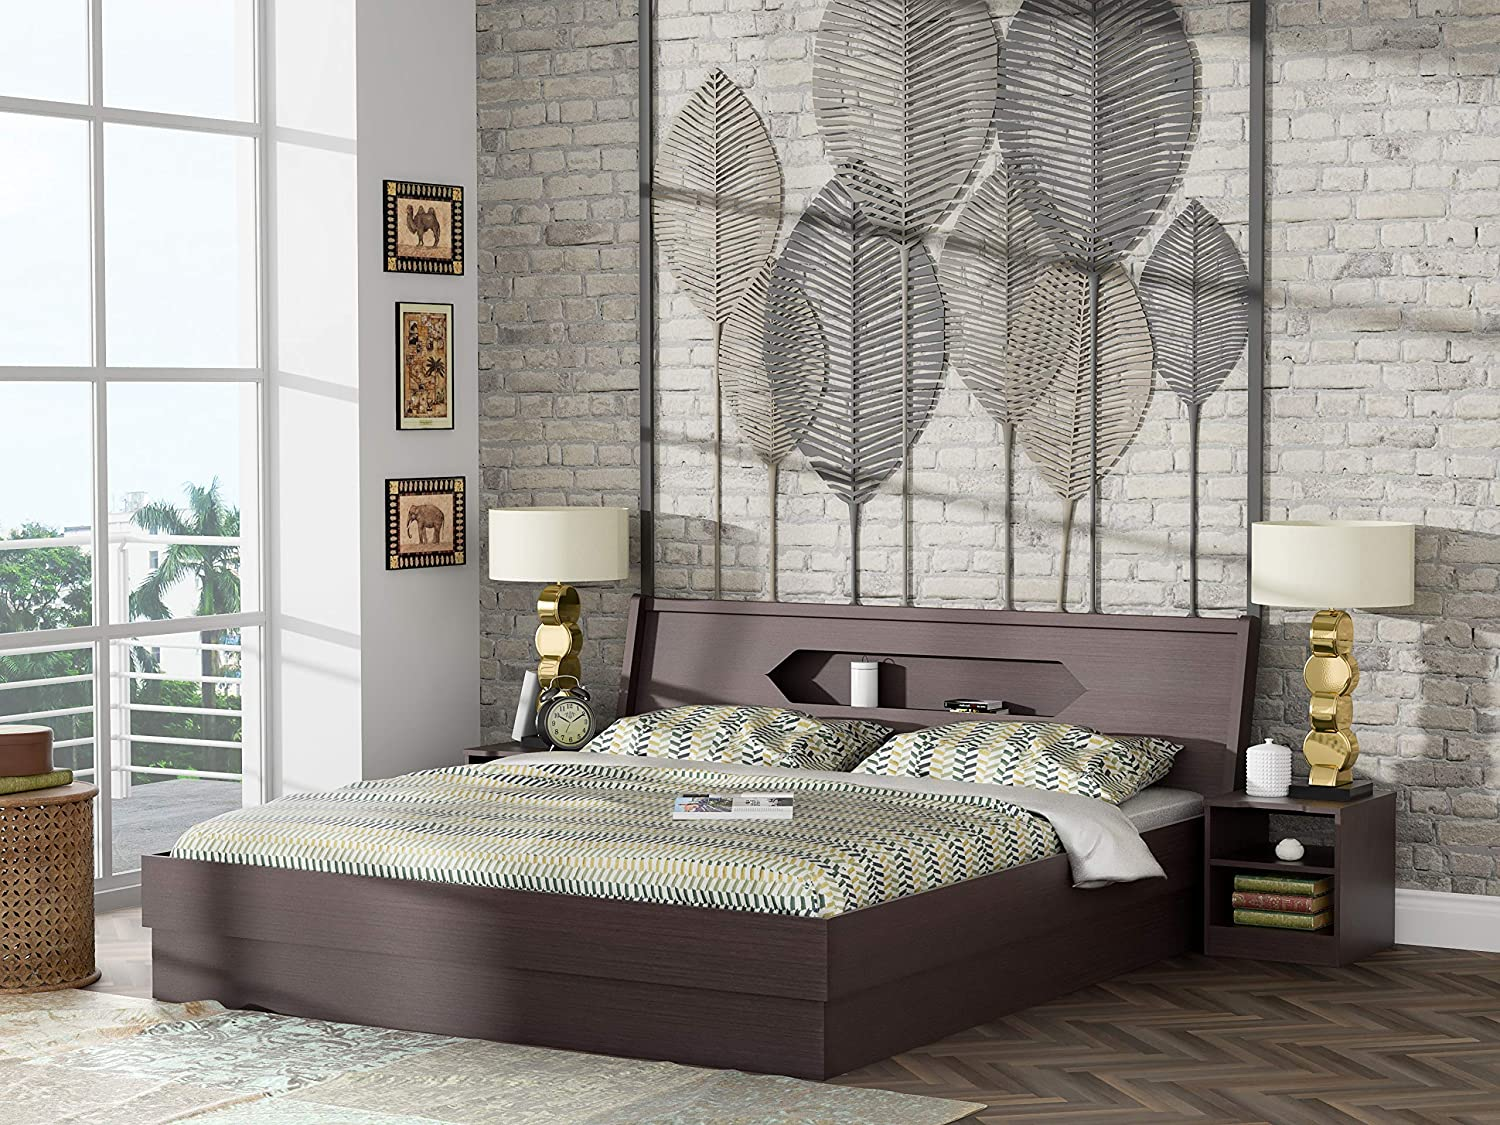 Stylespa Cove King Size Bed with Headboard Storage (Bamboo)